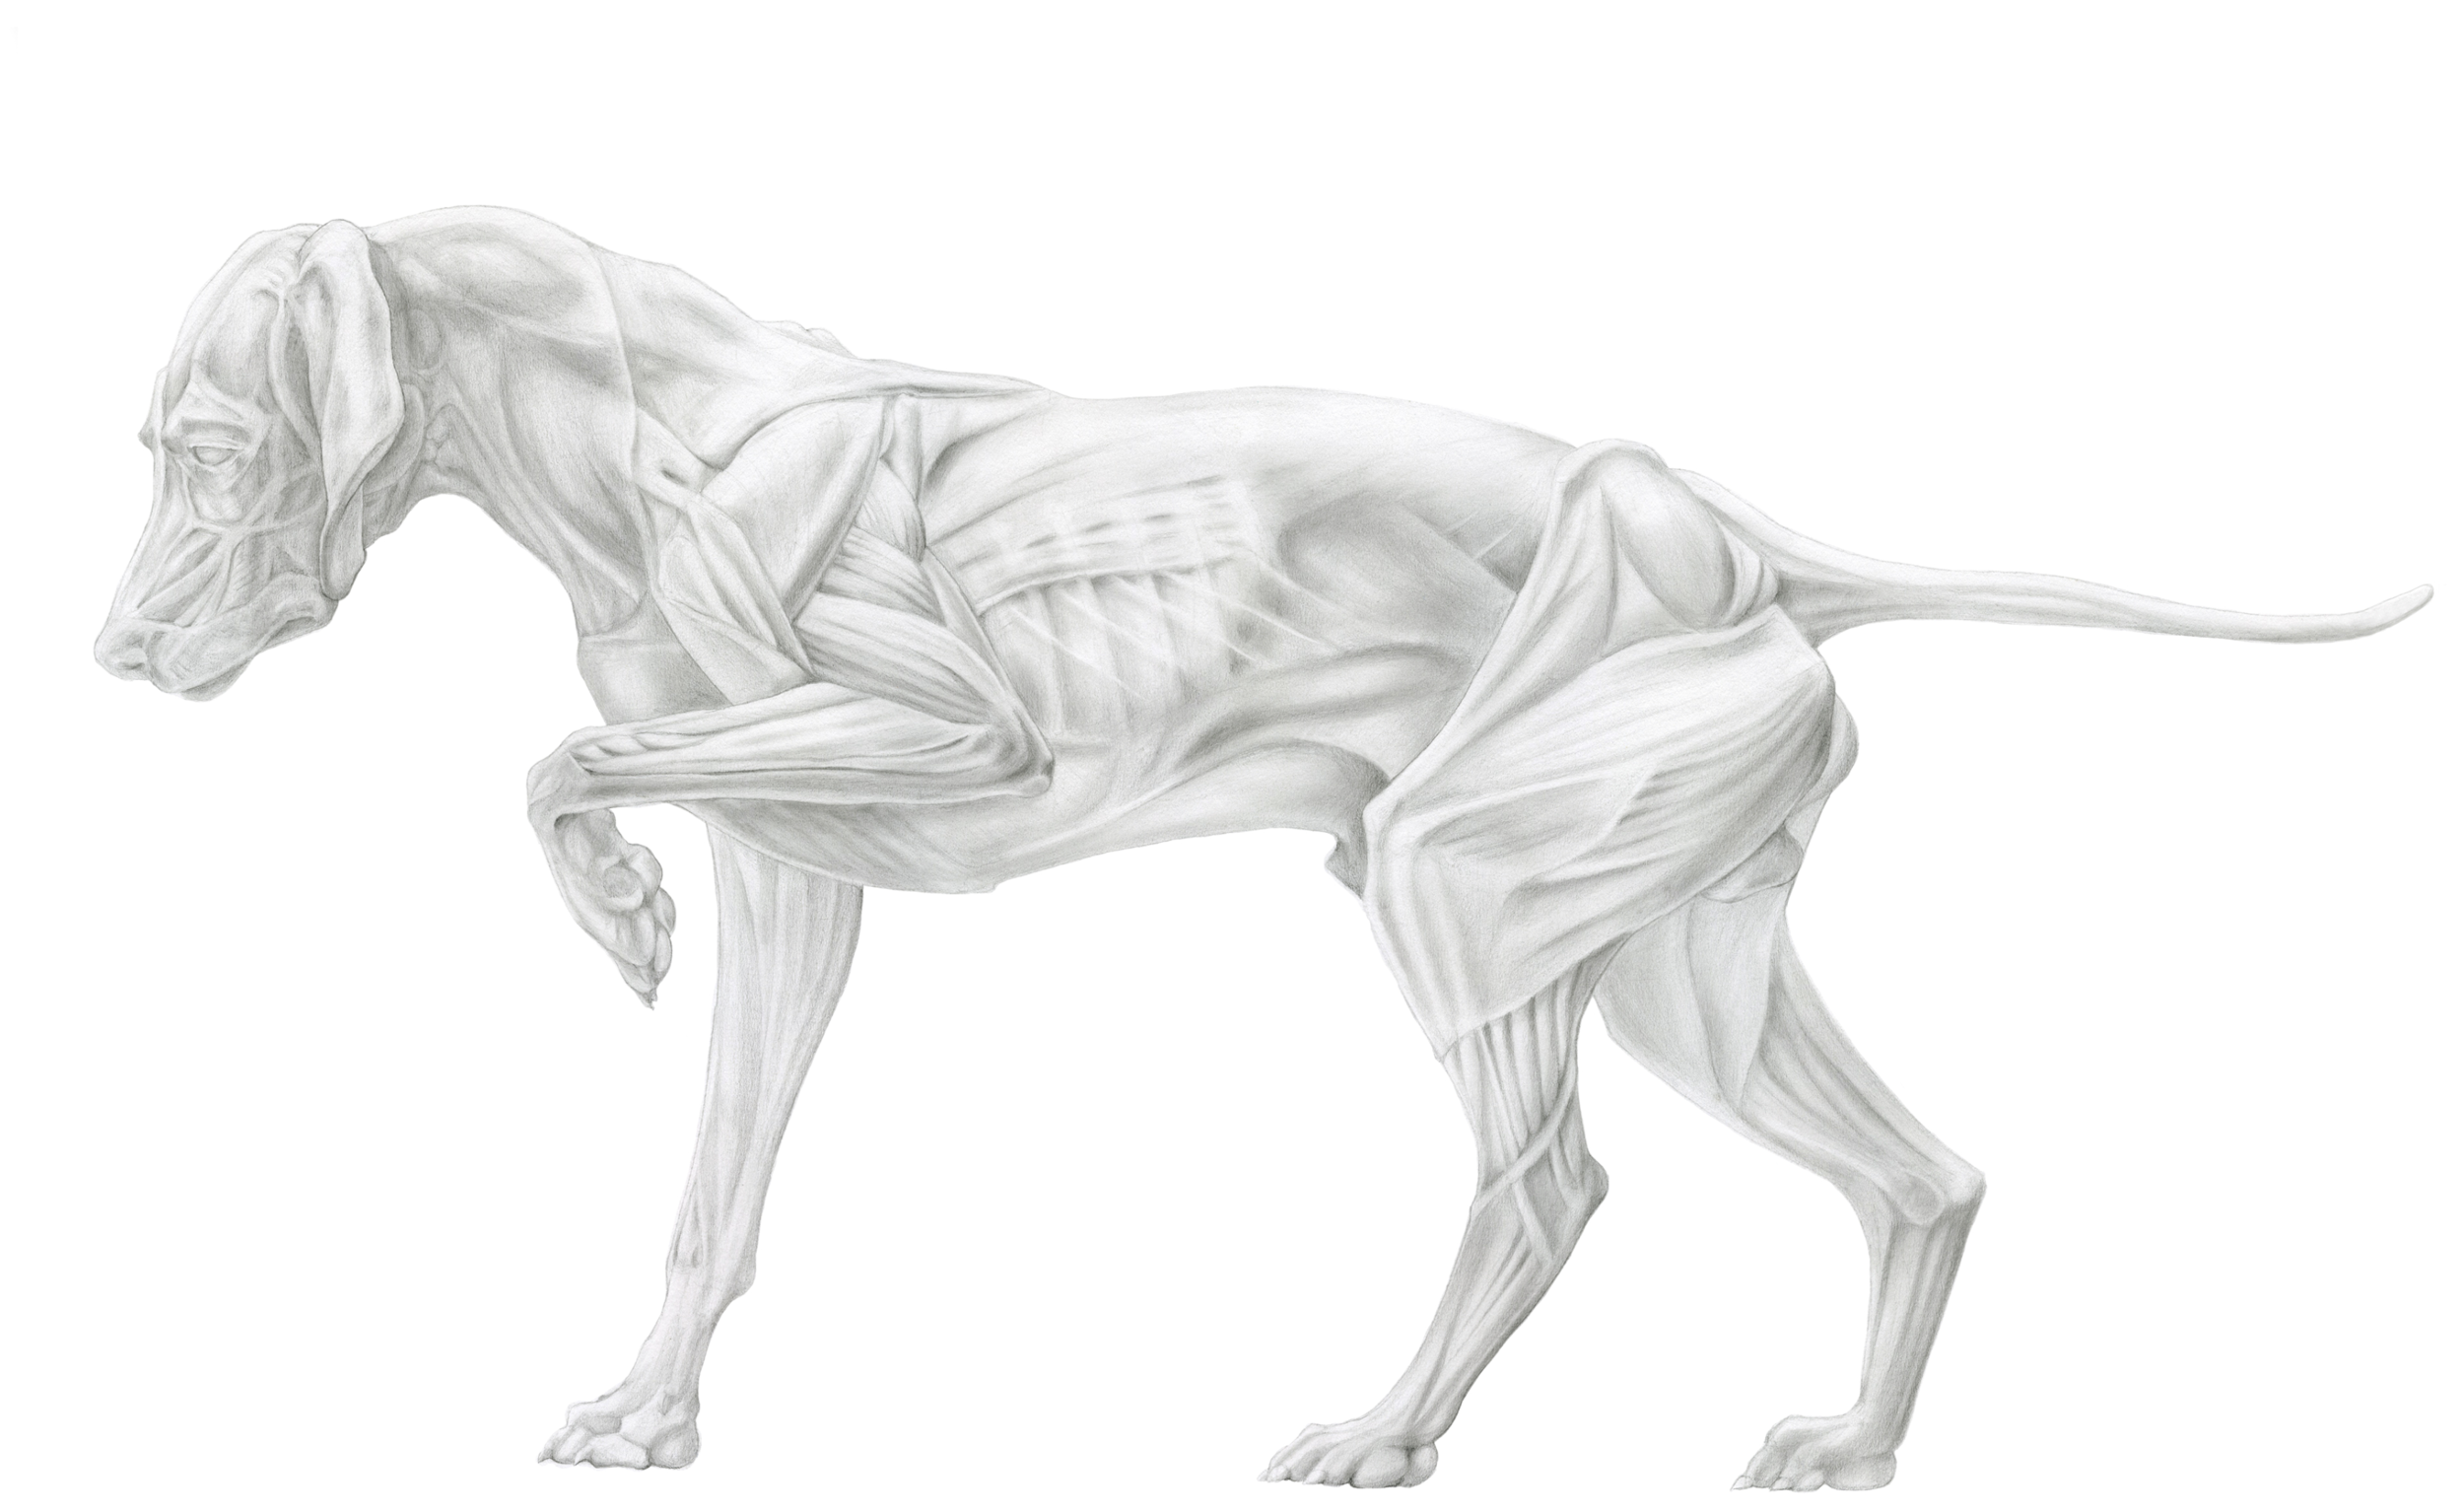 Muscular Anatomy of a Hound Dog